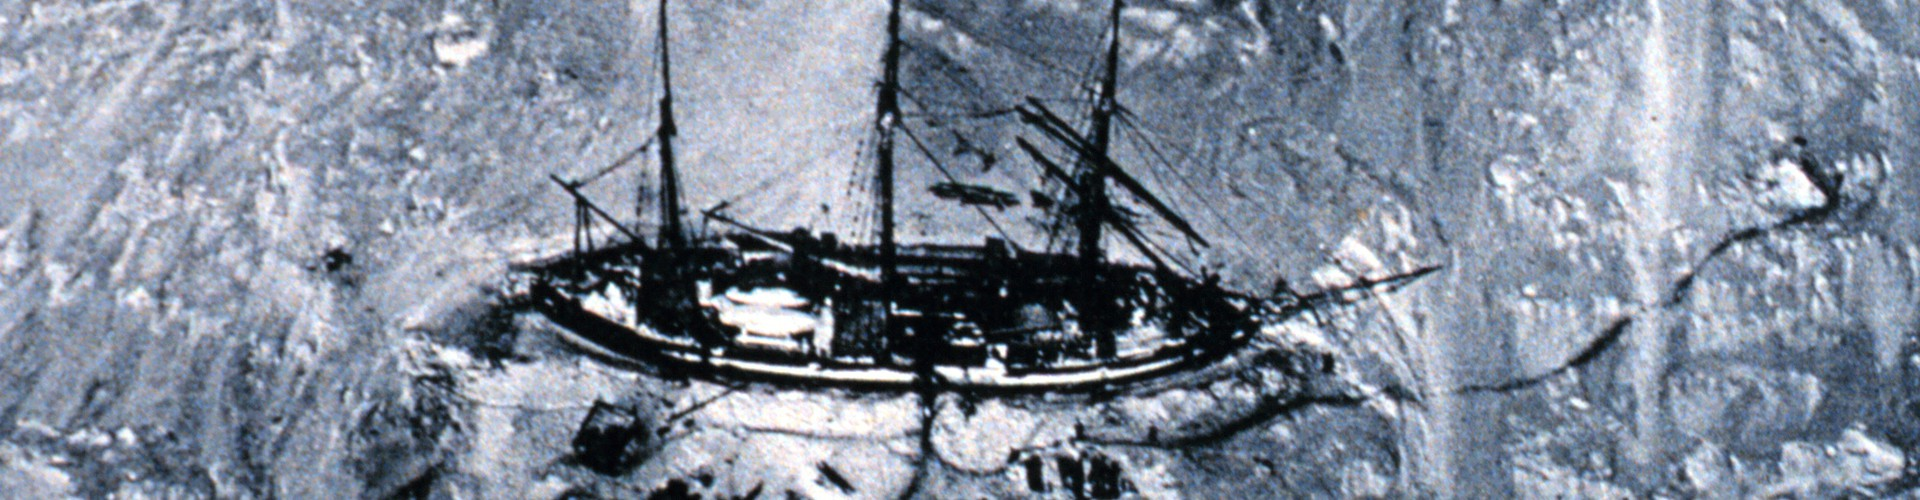 One of the first aerial photographs of the Antarctic, this picture was obtained from a balloon in 1901. It shows the ship of German explorer Erich von Drygalski's, the log books of which were used in the study. (Credit: National Oceanic and Atmospheric Administration/Department of Commerce)